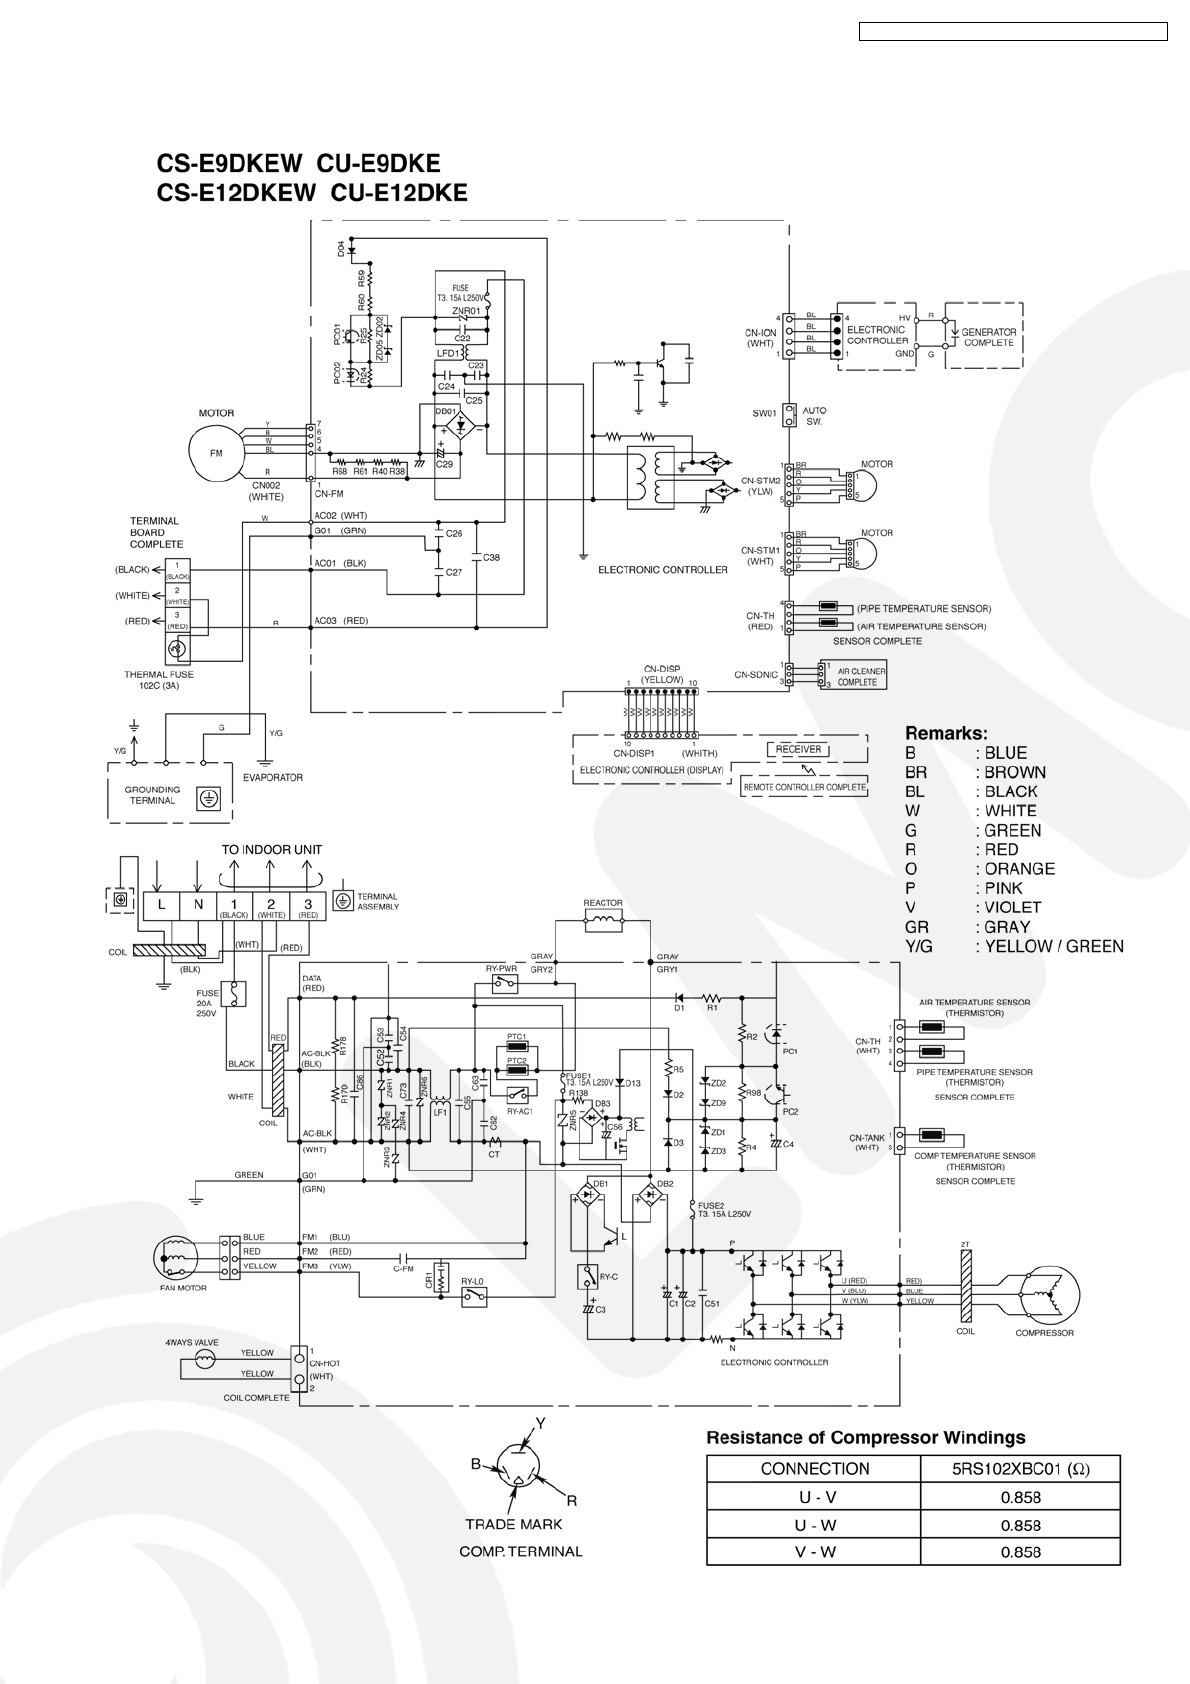 5bc1cf0d d725 4126 8b82 4c2e87dbfb59 bgf?resize=665%2C941 model hblg1200r room air conditioner wiring diagram model wiring  at gsmx.co